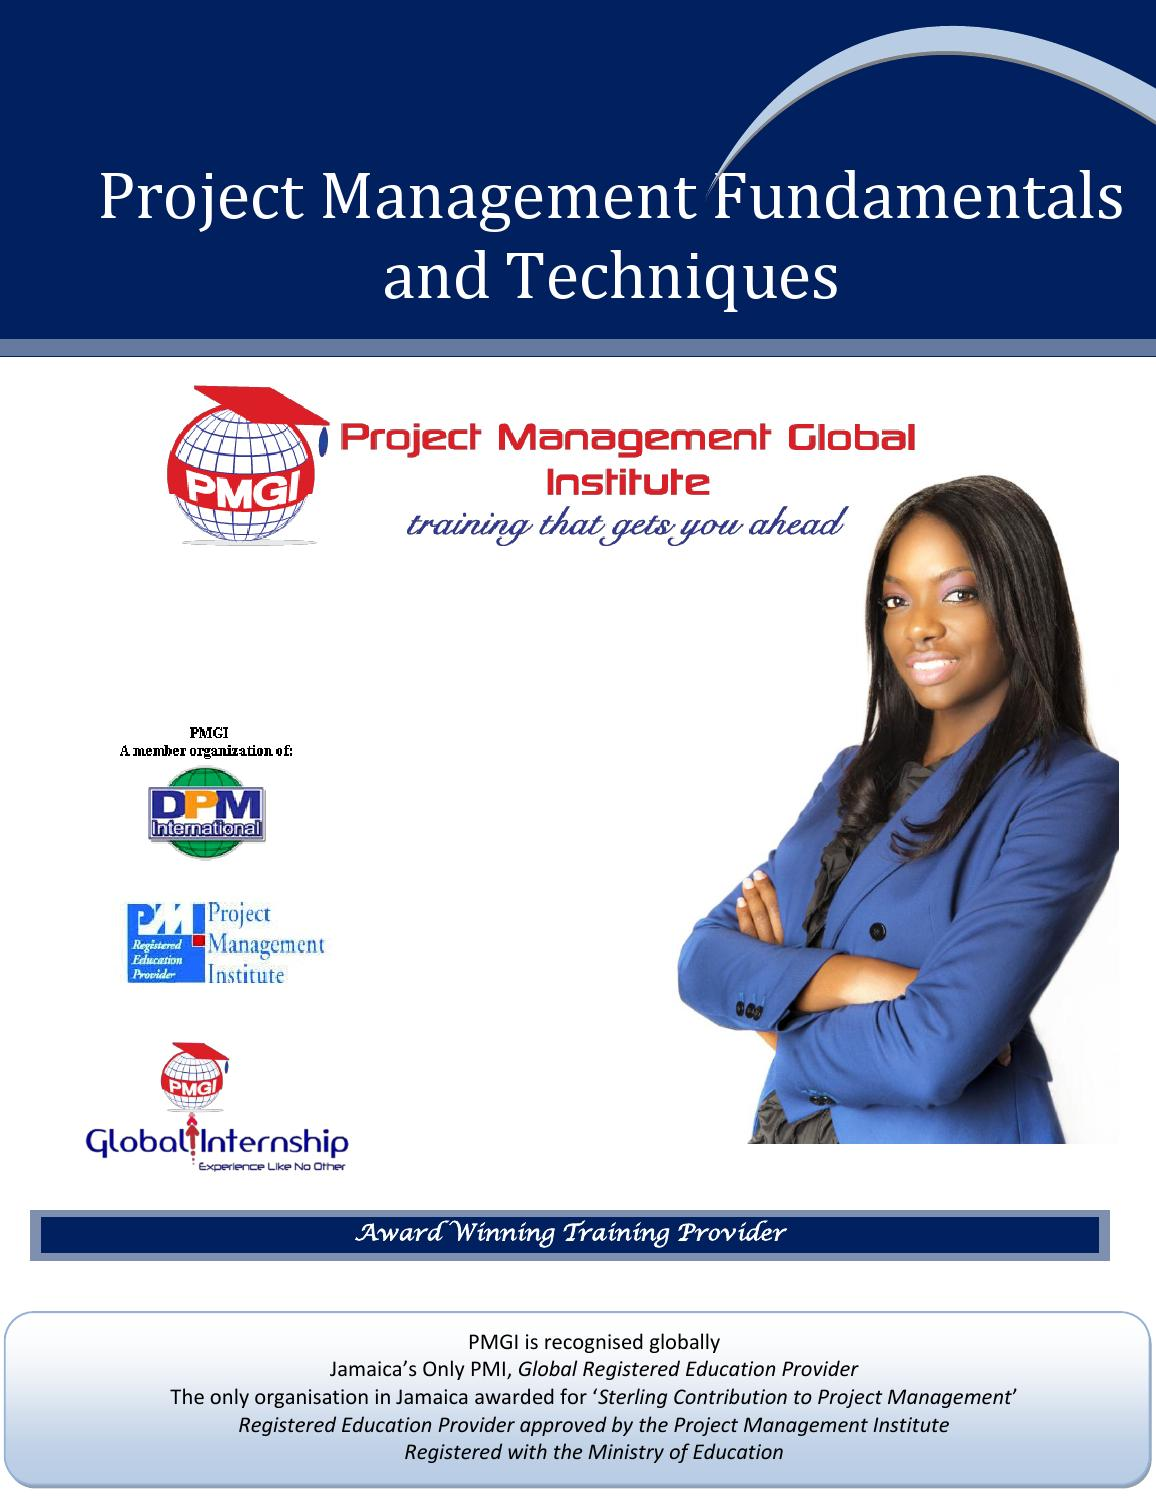 Project Management Fundamentals And Techniques Info Pack 2015 By